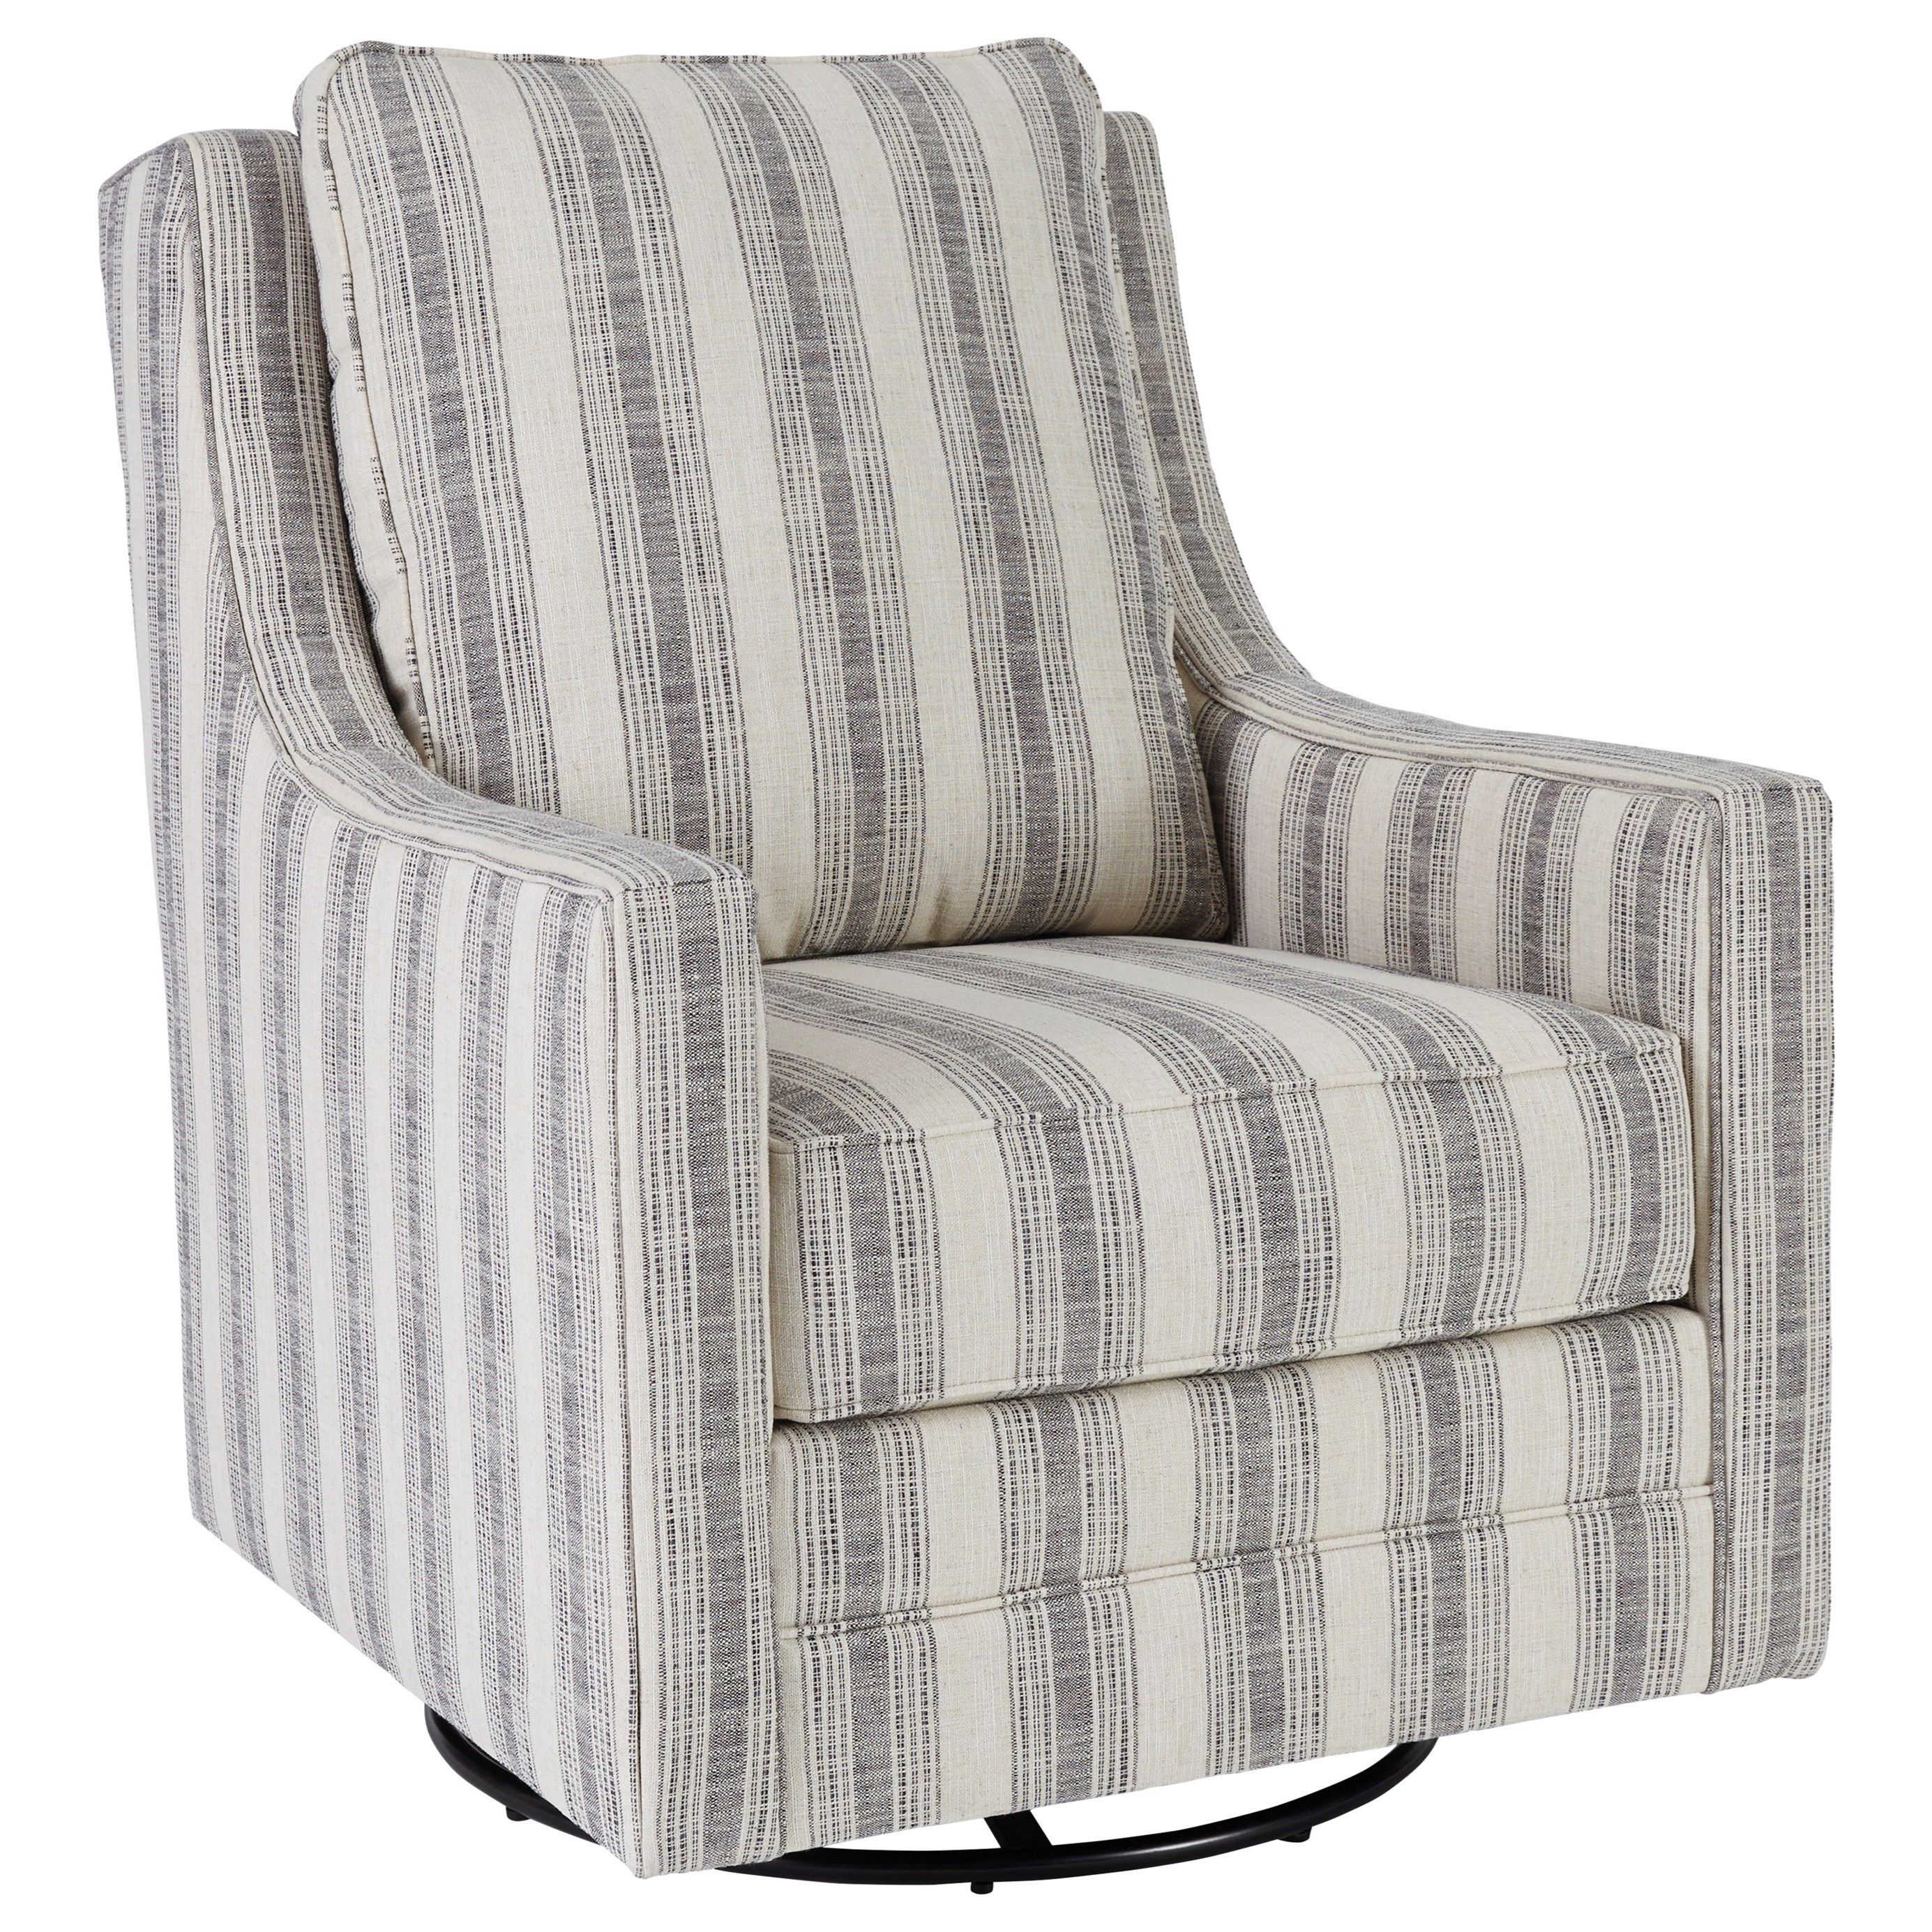 Kambria Swivel Glider Accent Chair by Signature at Walker's Furniture